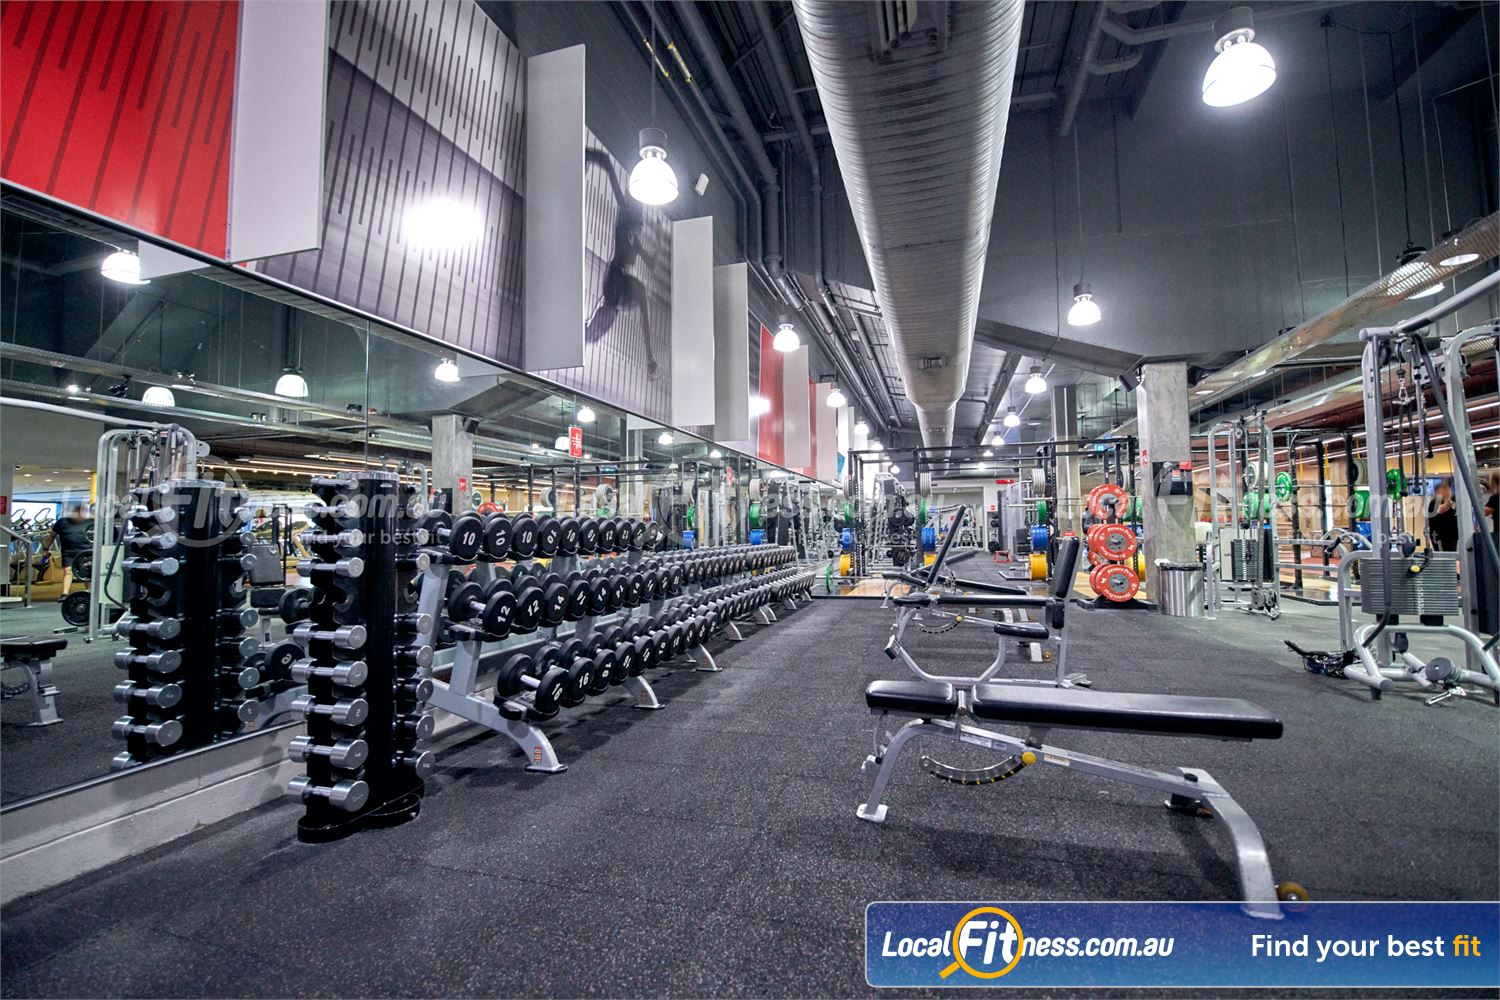 Fitness First Victoria Gardens Near South Yarra Our 24/7 Richmond gym includes a fully equipped free-weights area.